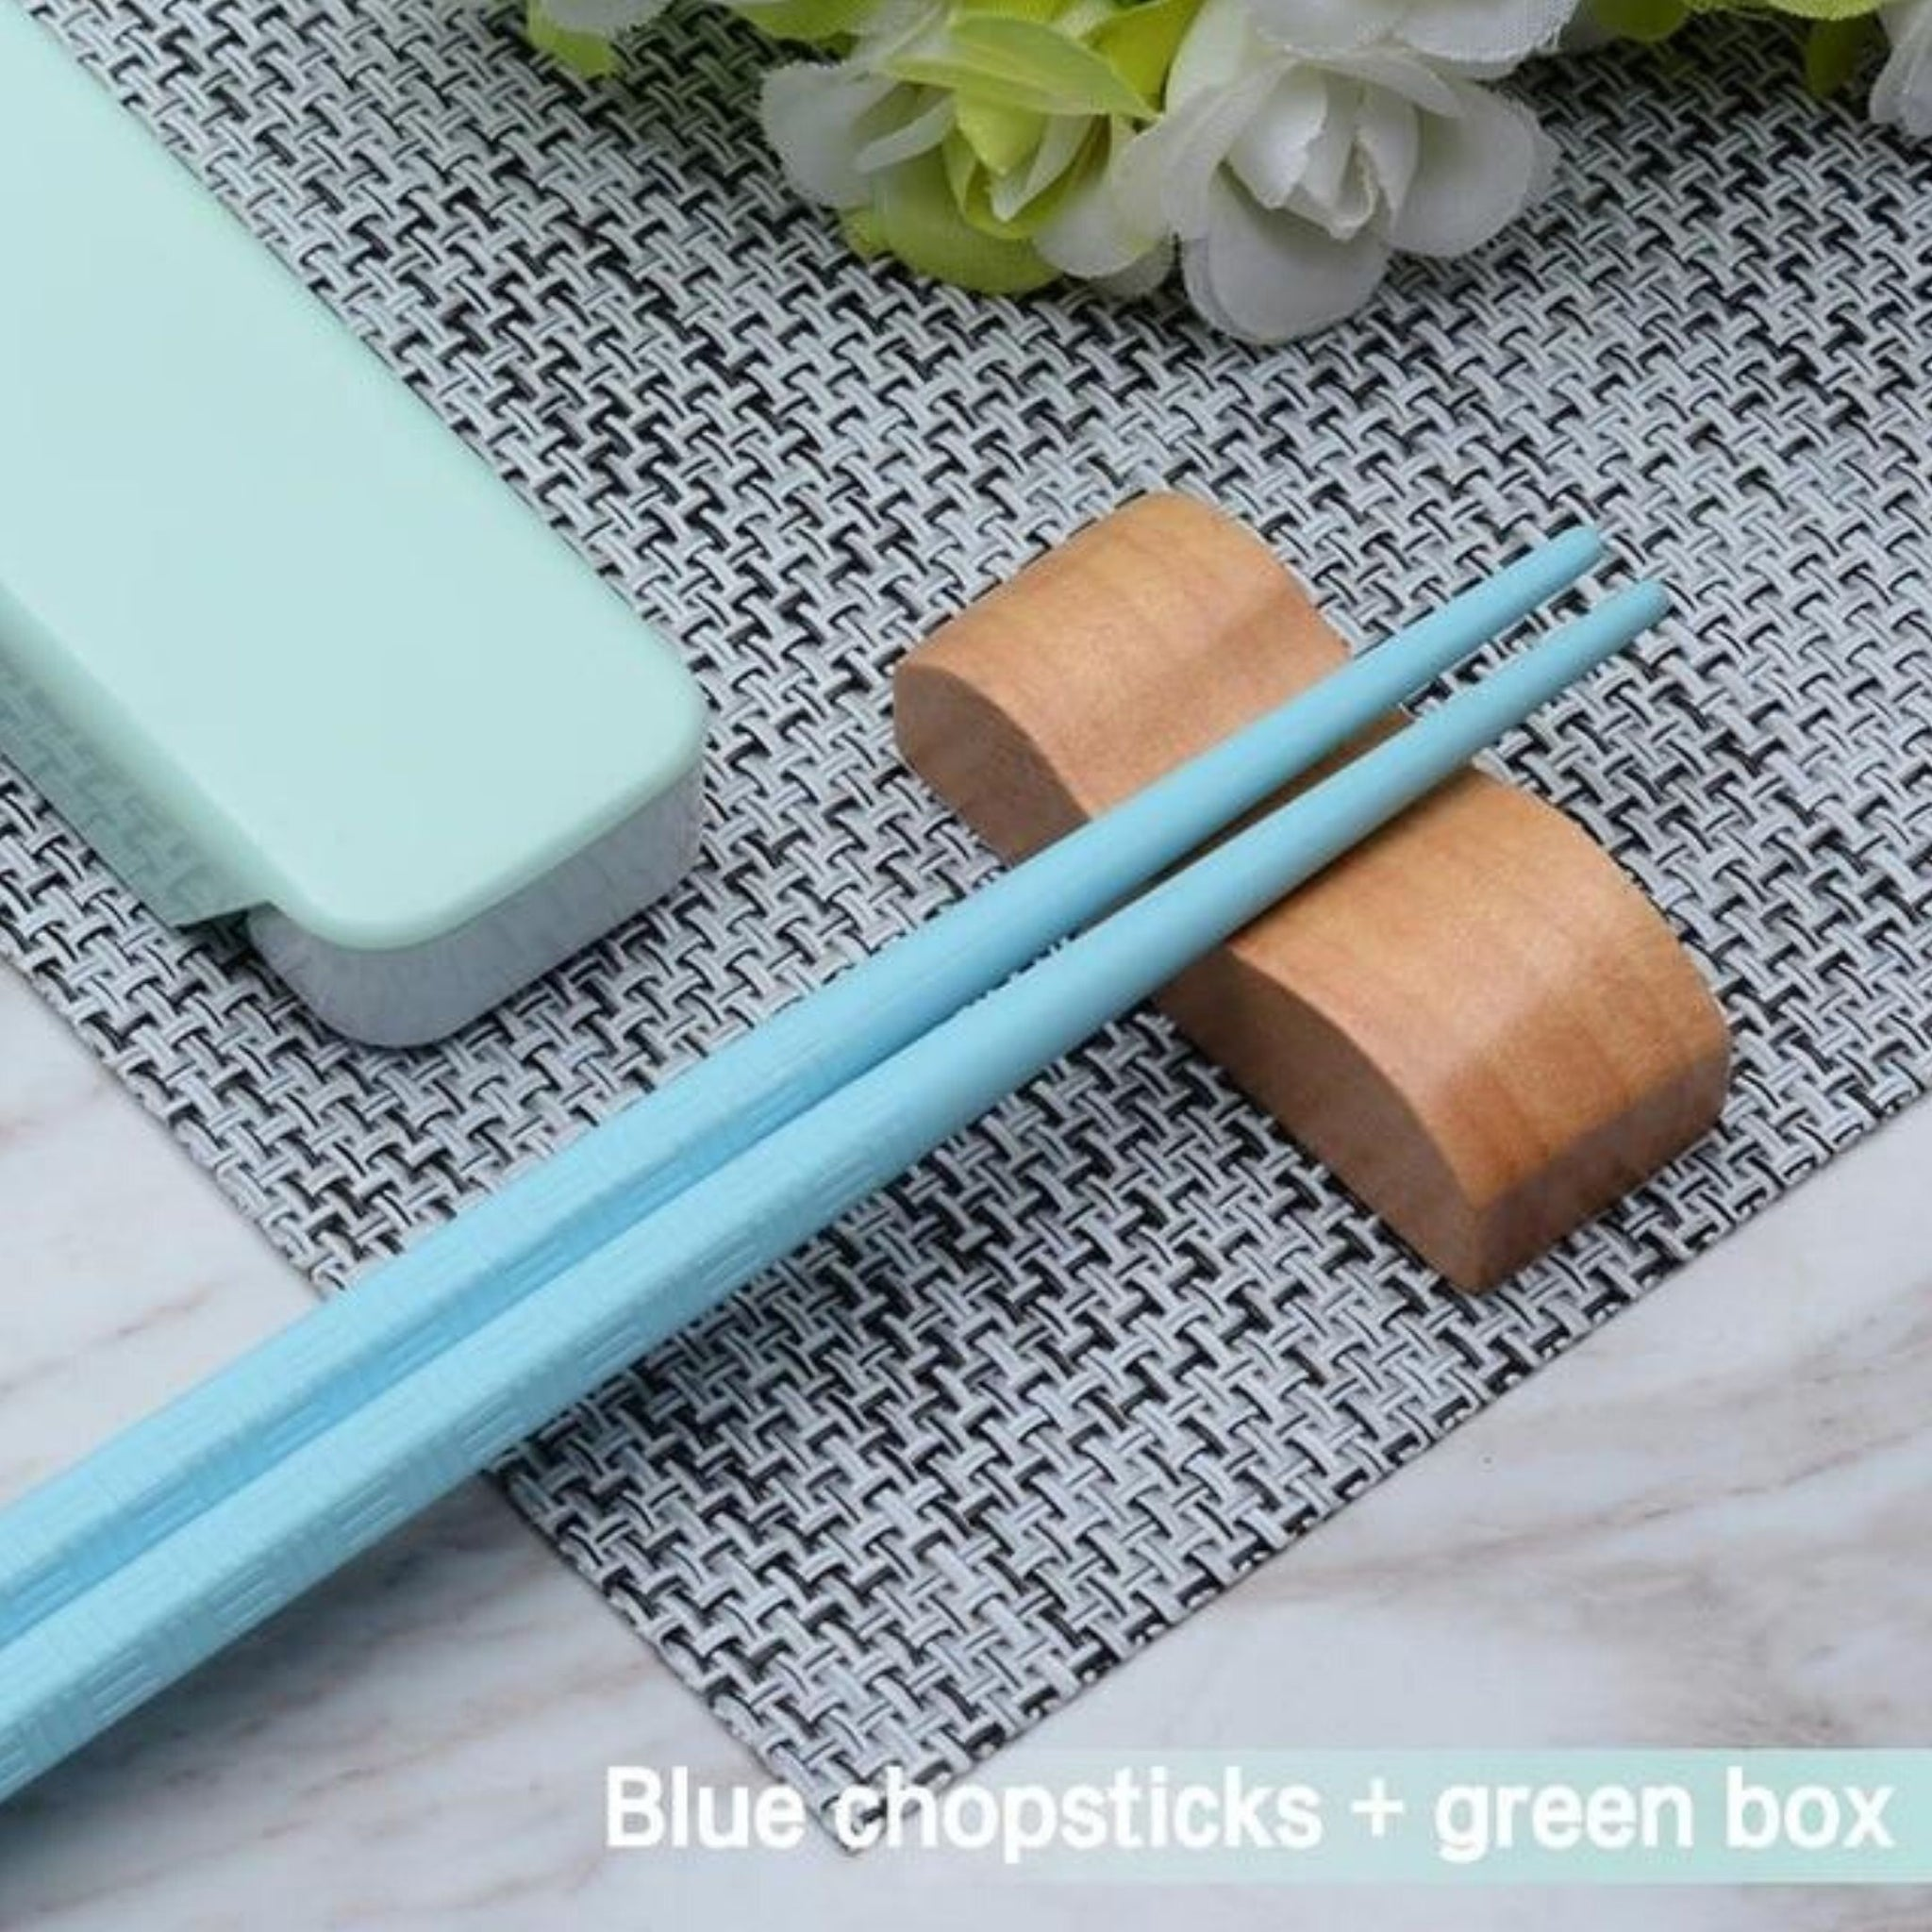 Japanese Travel Blue Chopsticks Set with Case Suitable for School Office Camping Traveling Trend